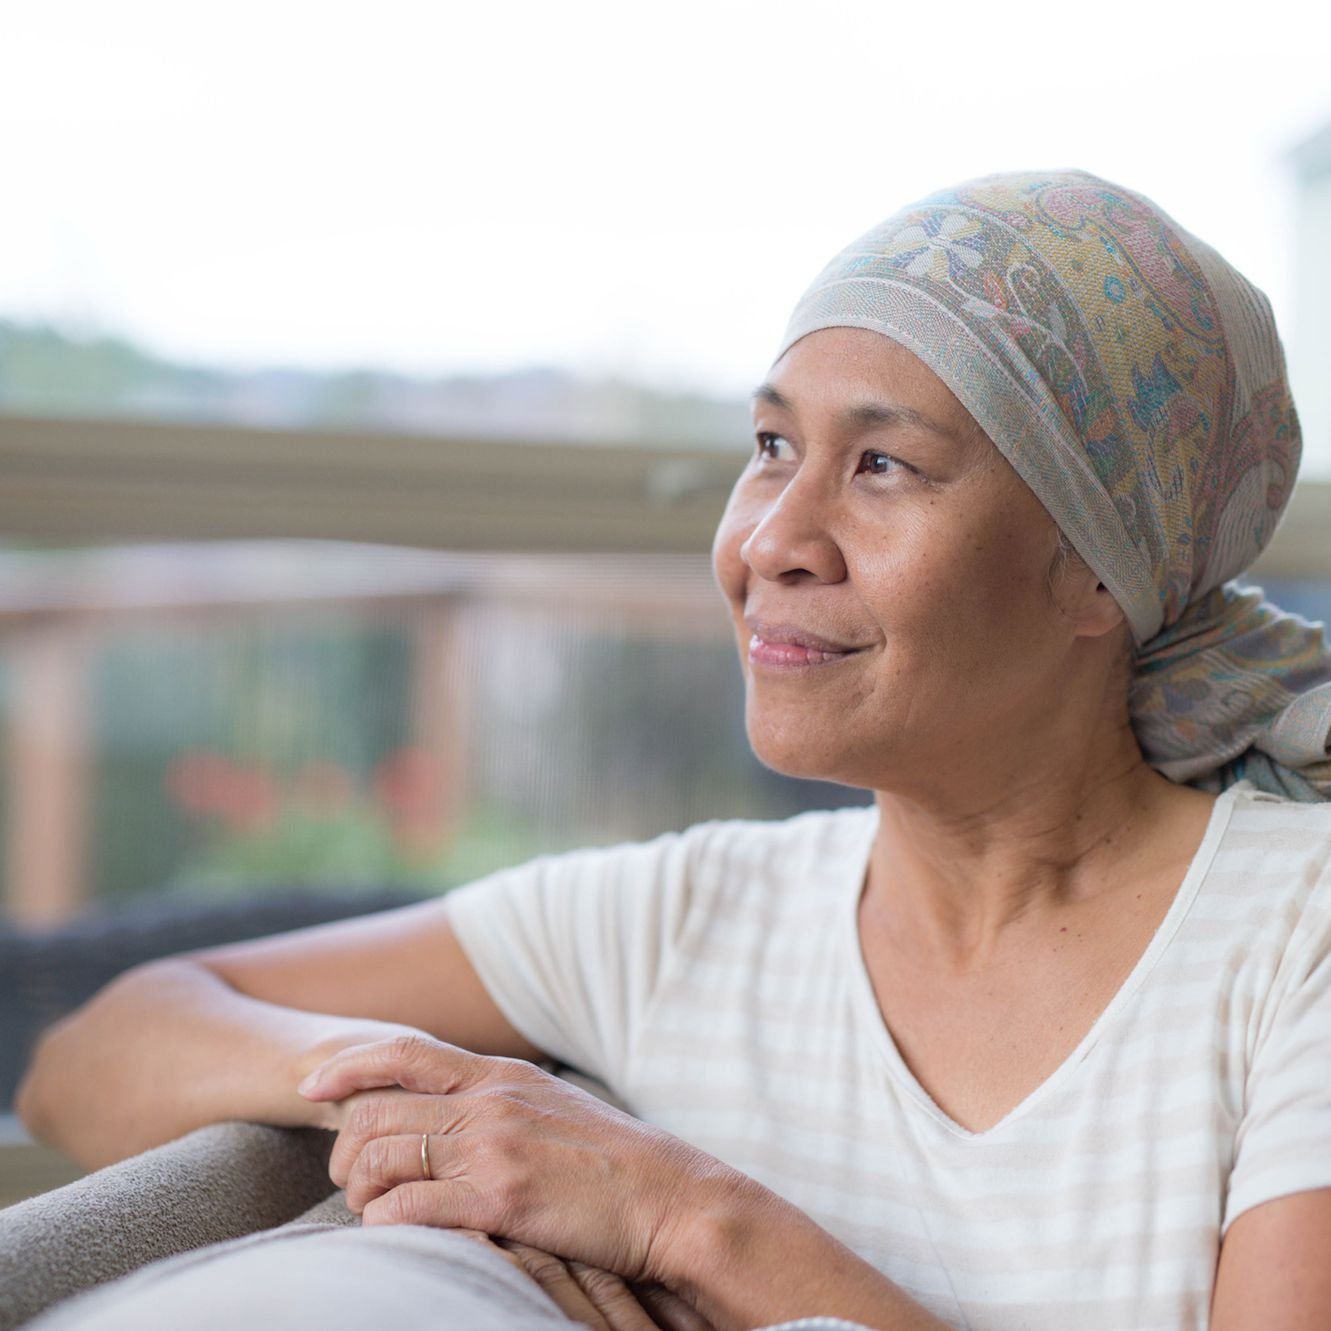 The Chemotherapy Drugs That Cause Hair Loss